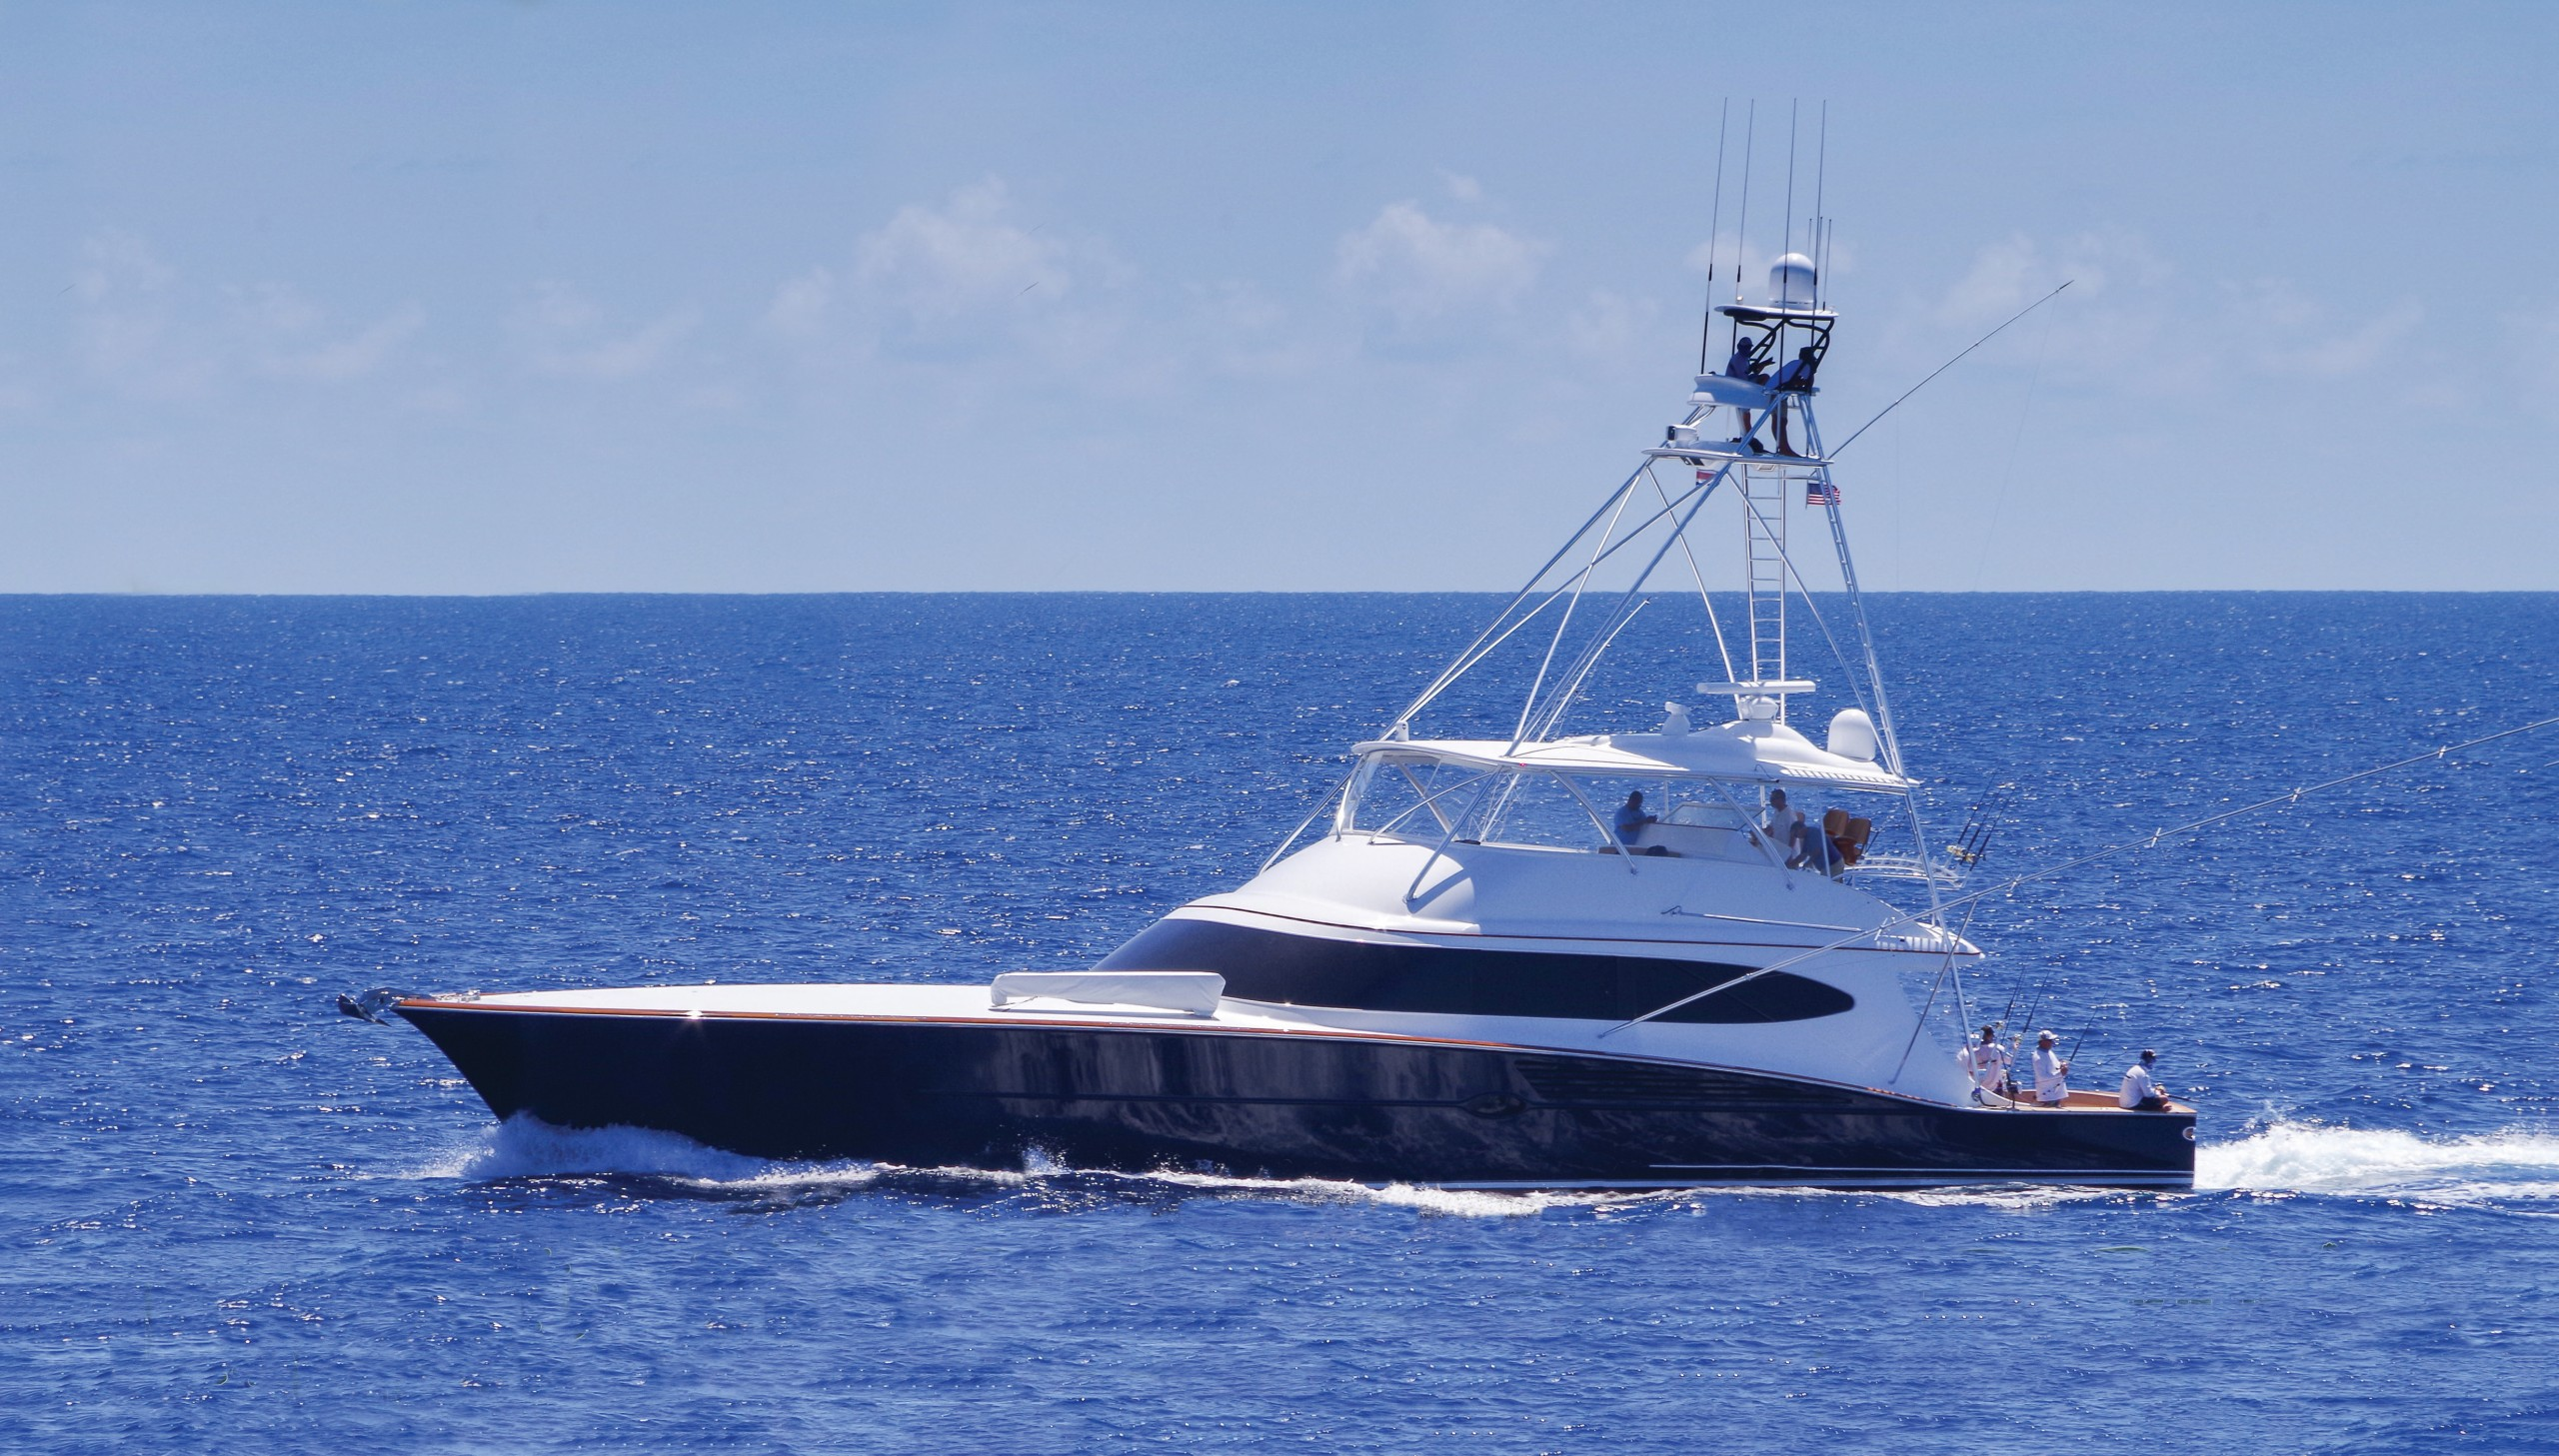 blue sportfishing boat on blue ocean